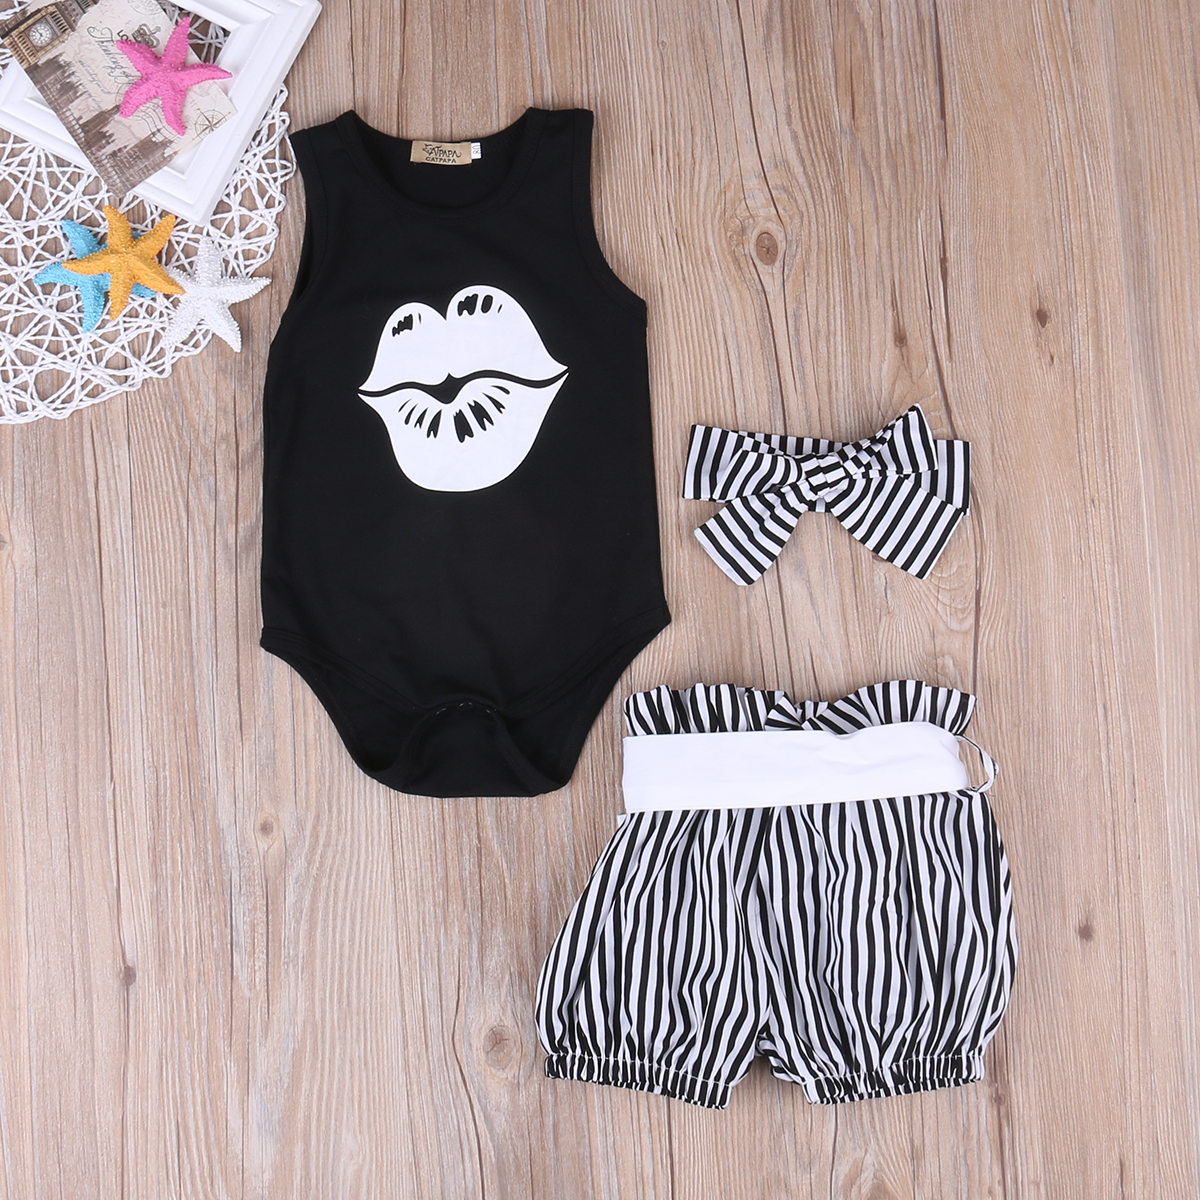 3PCS-Set-Newborn-Baby-Girl-Clothes-2017-Summer-Sleeveless-Slip-Romper-Striped-Bloomers-Bottom-Outfit-Toddler-Kids-Clothing-2